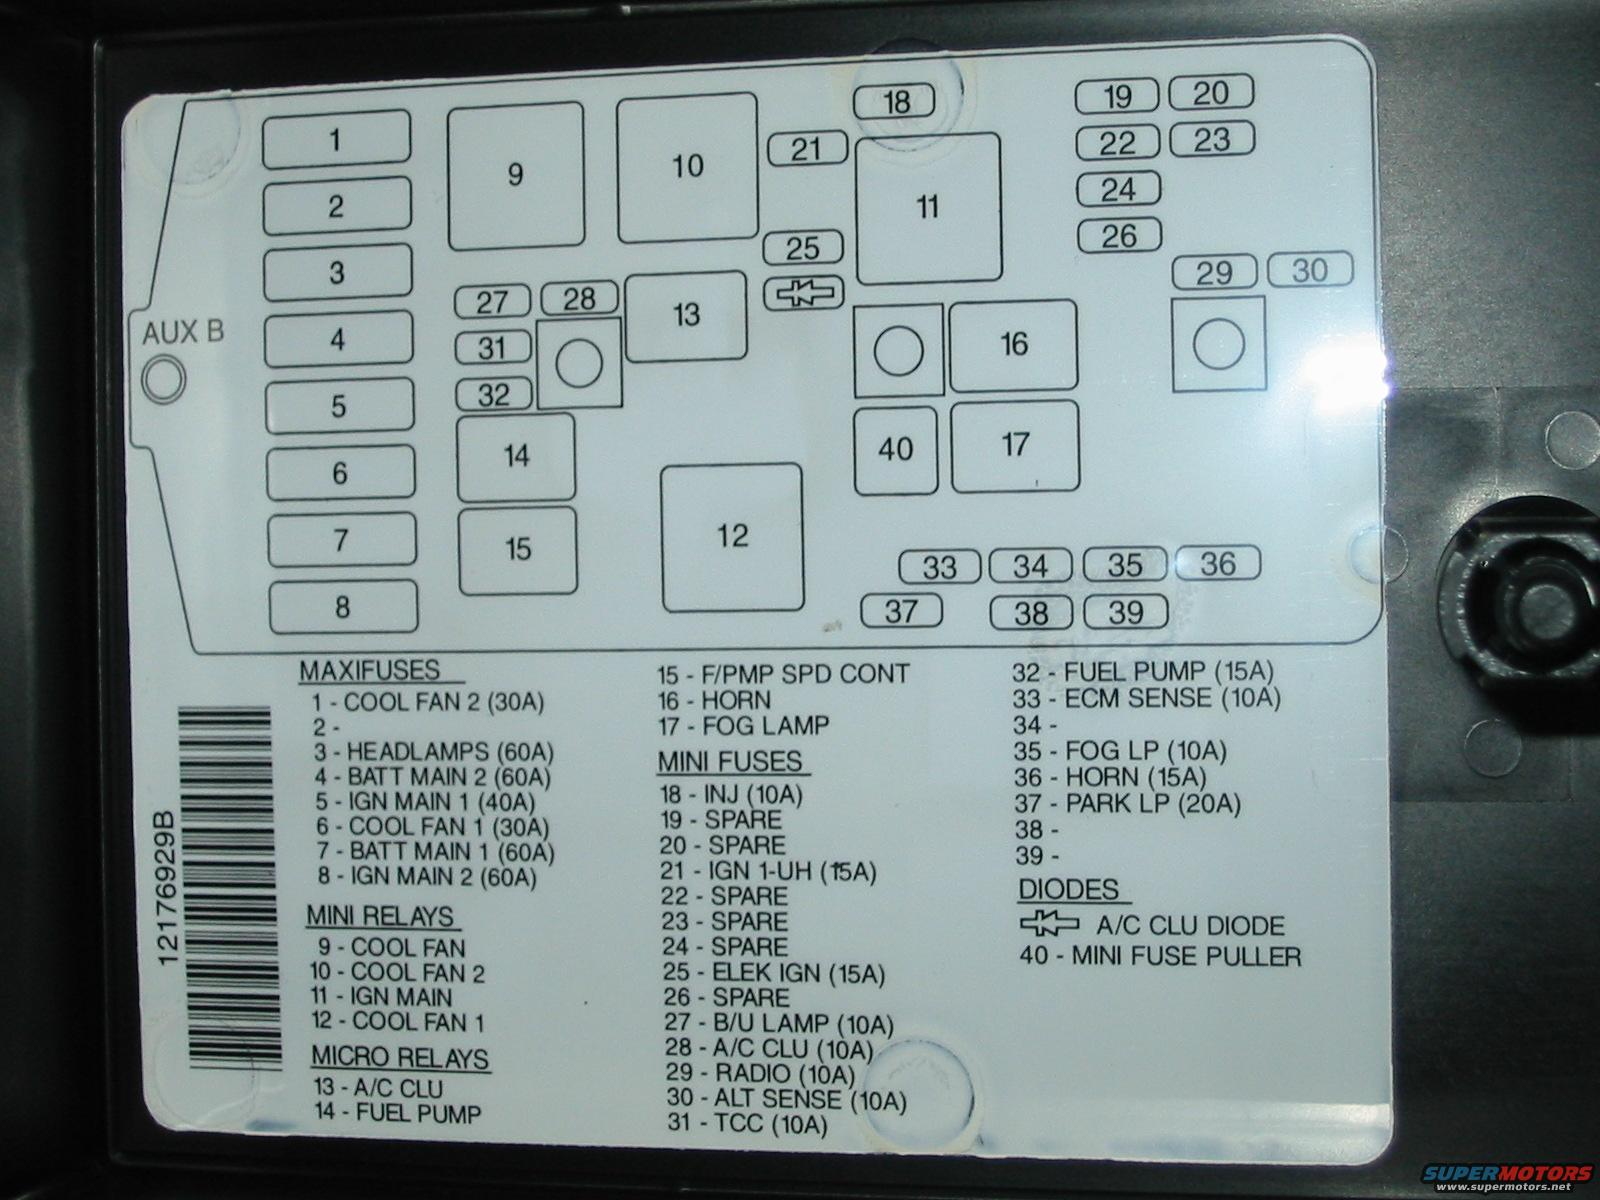 2007 Nissan Frontier Fuse Box Diagram